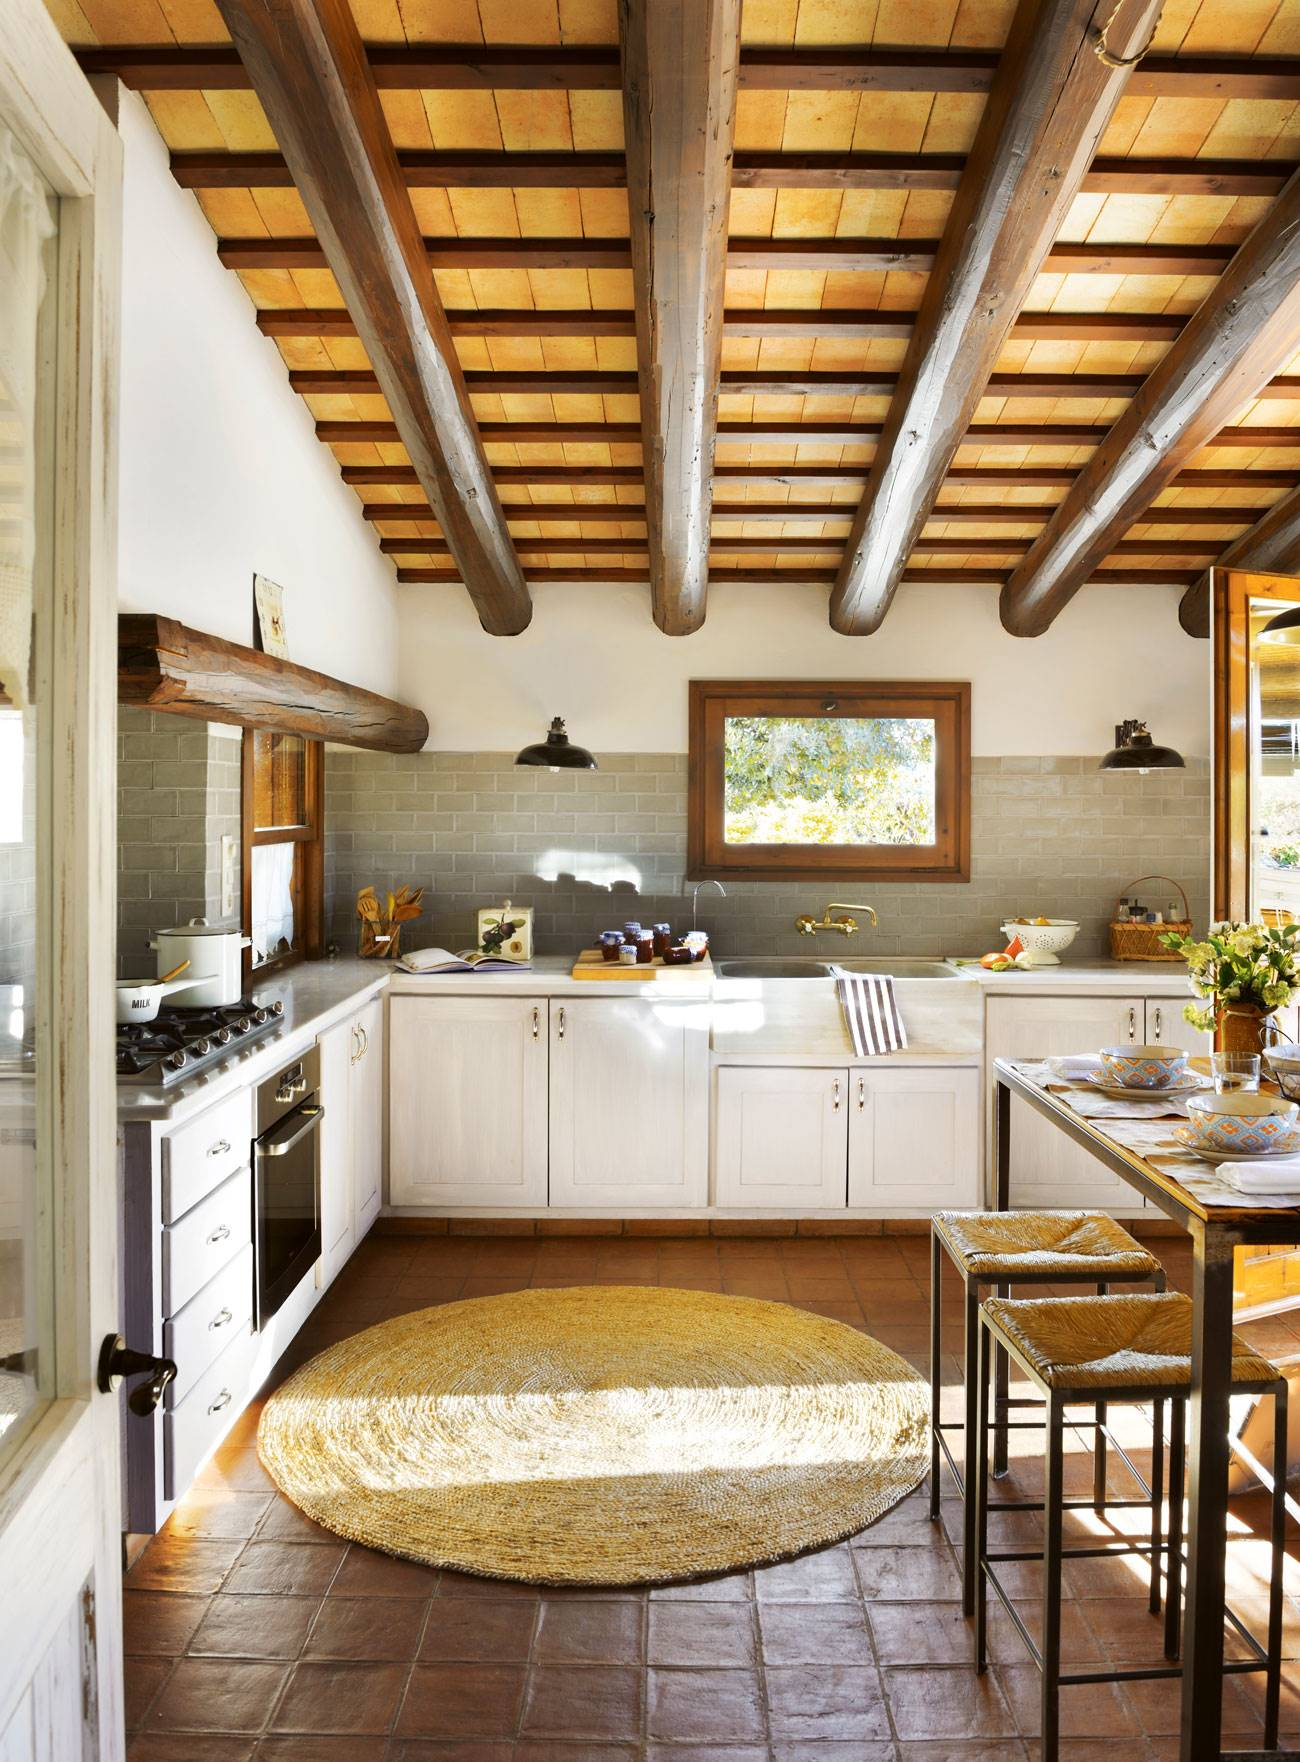 Rustic-style-kitchen-with-tova-floor-and-natural-fiber-carpet-and-ceiling-two-color-beams-409296. Travel to the past